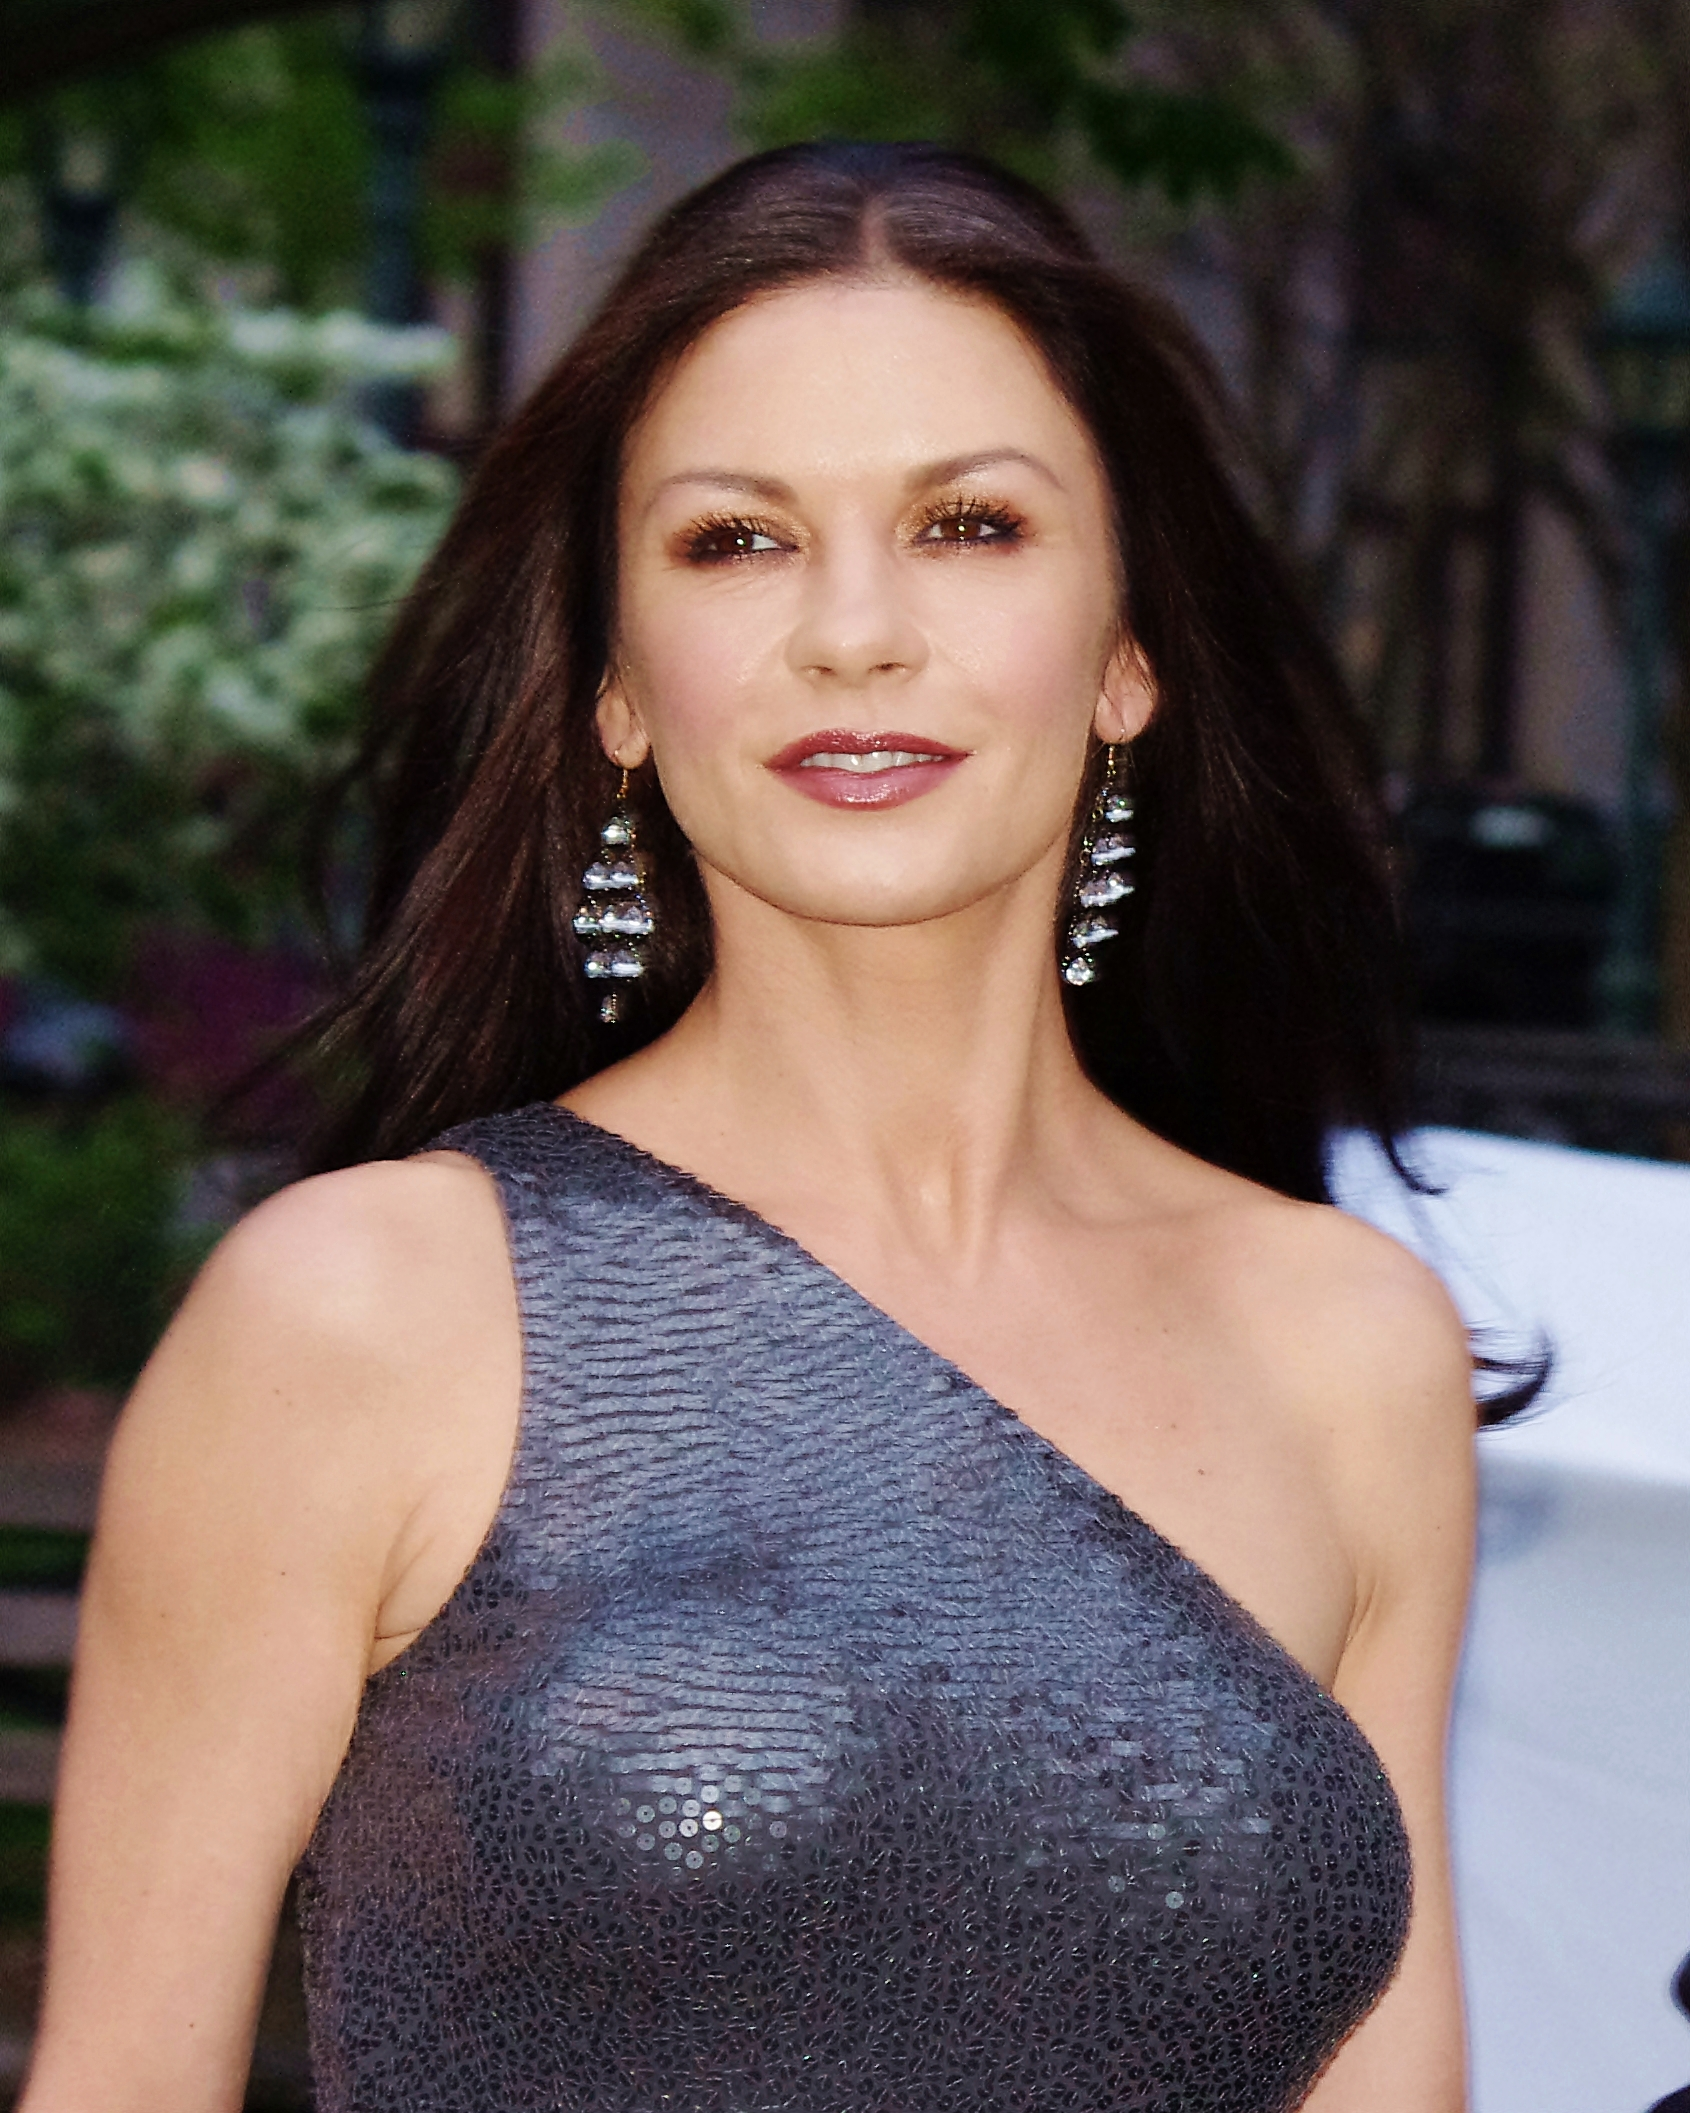 Description Catherine Zeta-Jones VF 2012 Shankbone 2.jpg